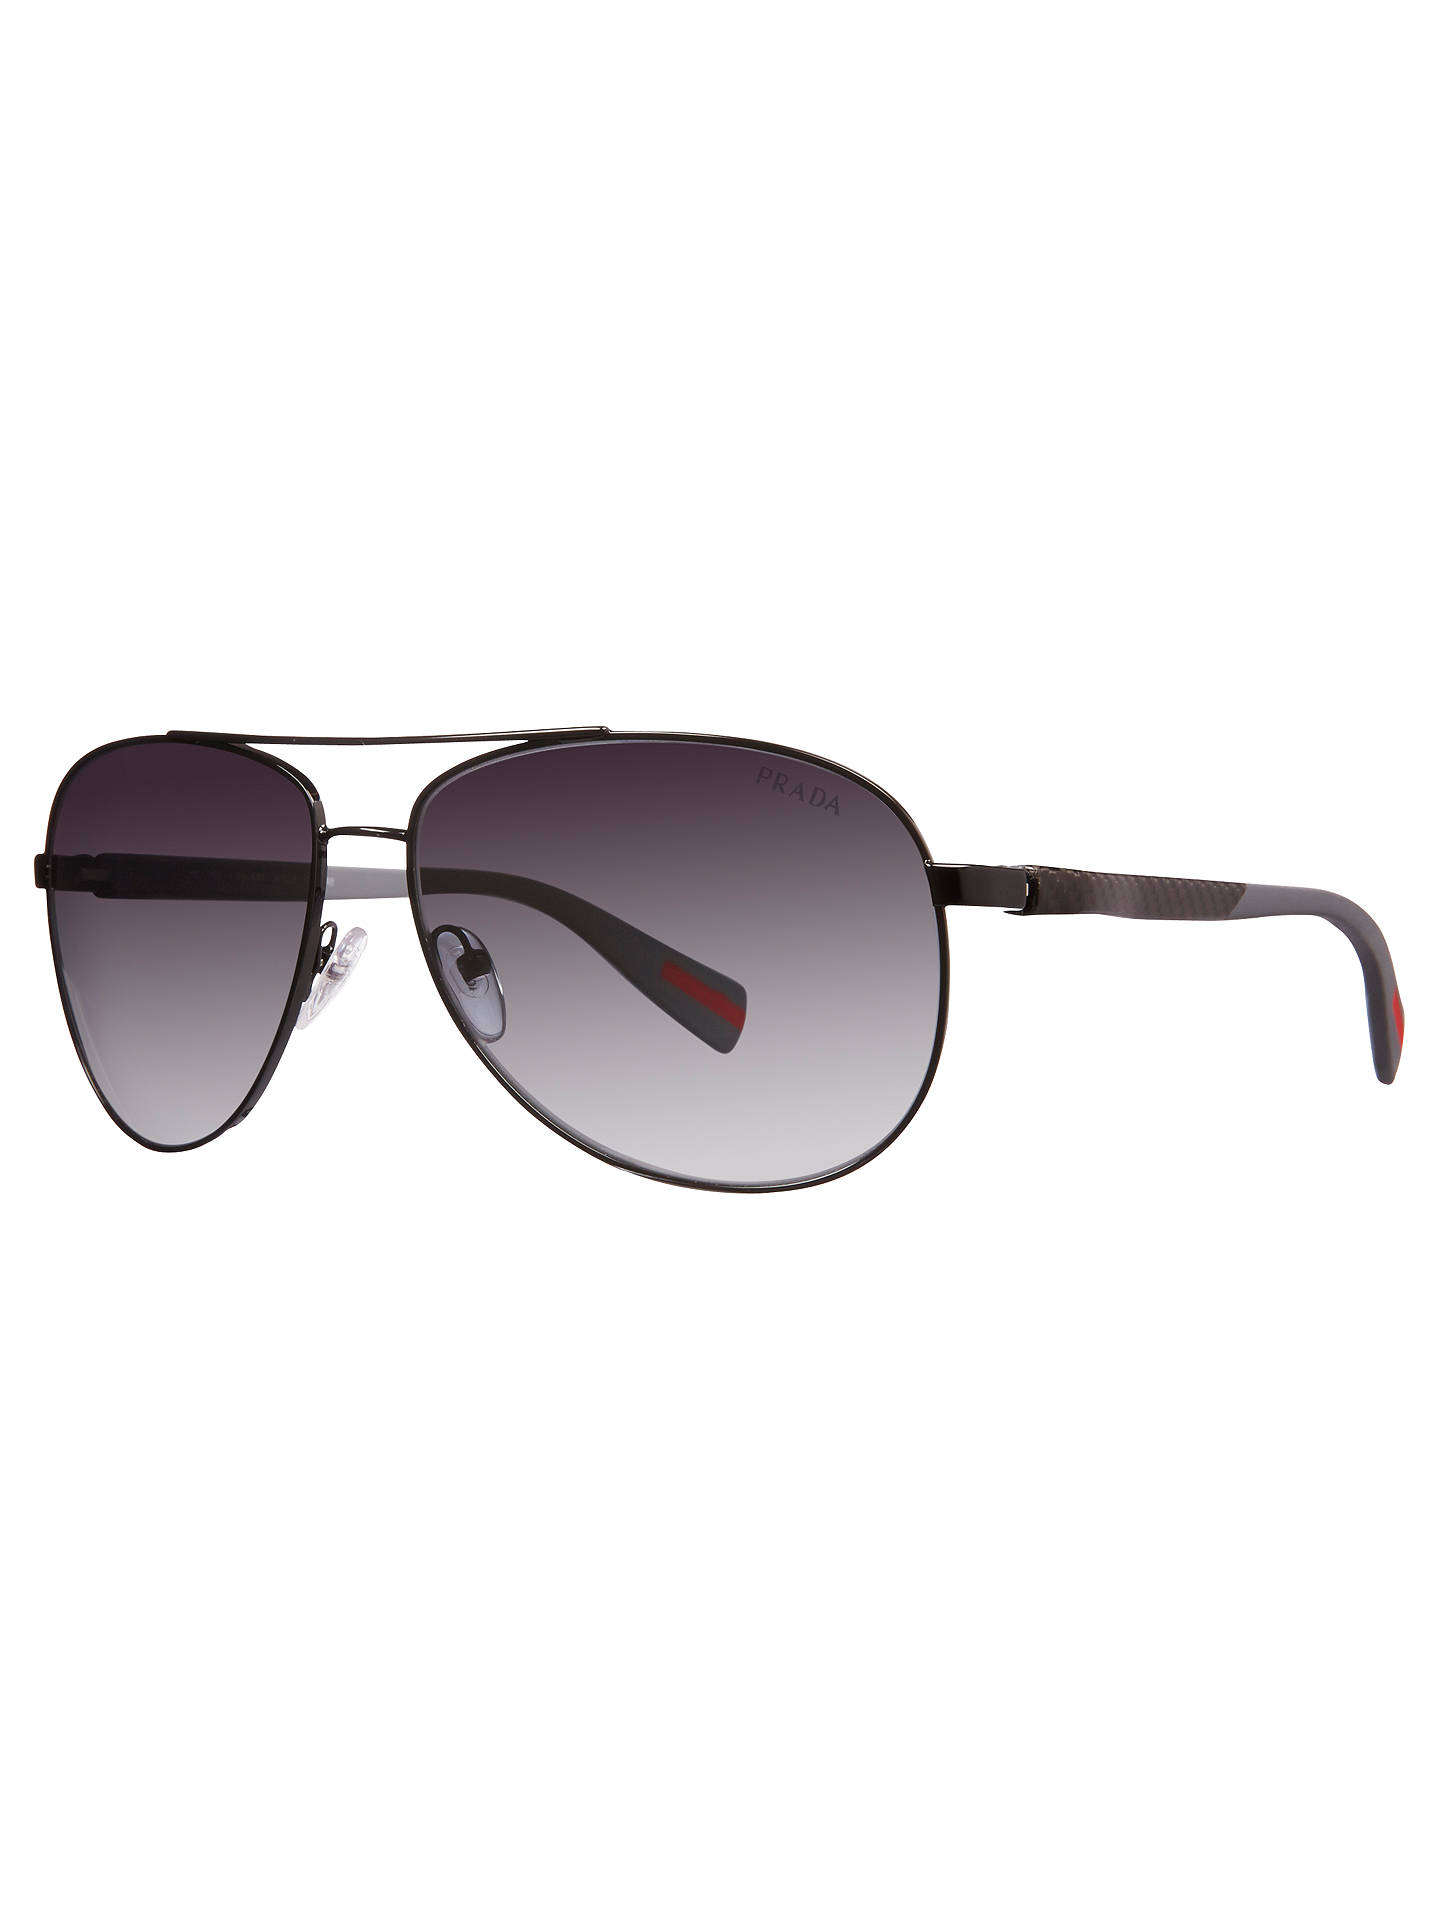 b1a4f3670fa Buy Prada Linea Rossa PS51OS Polarised Aviator Sunglasses